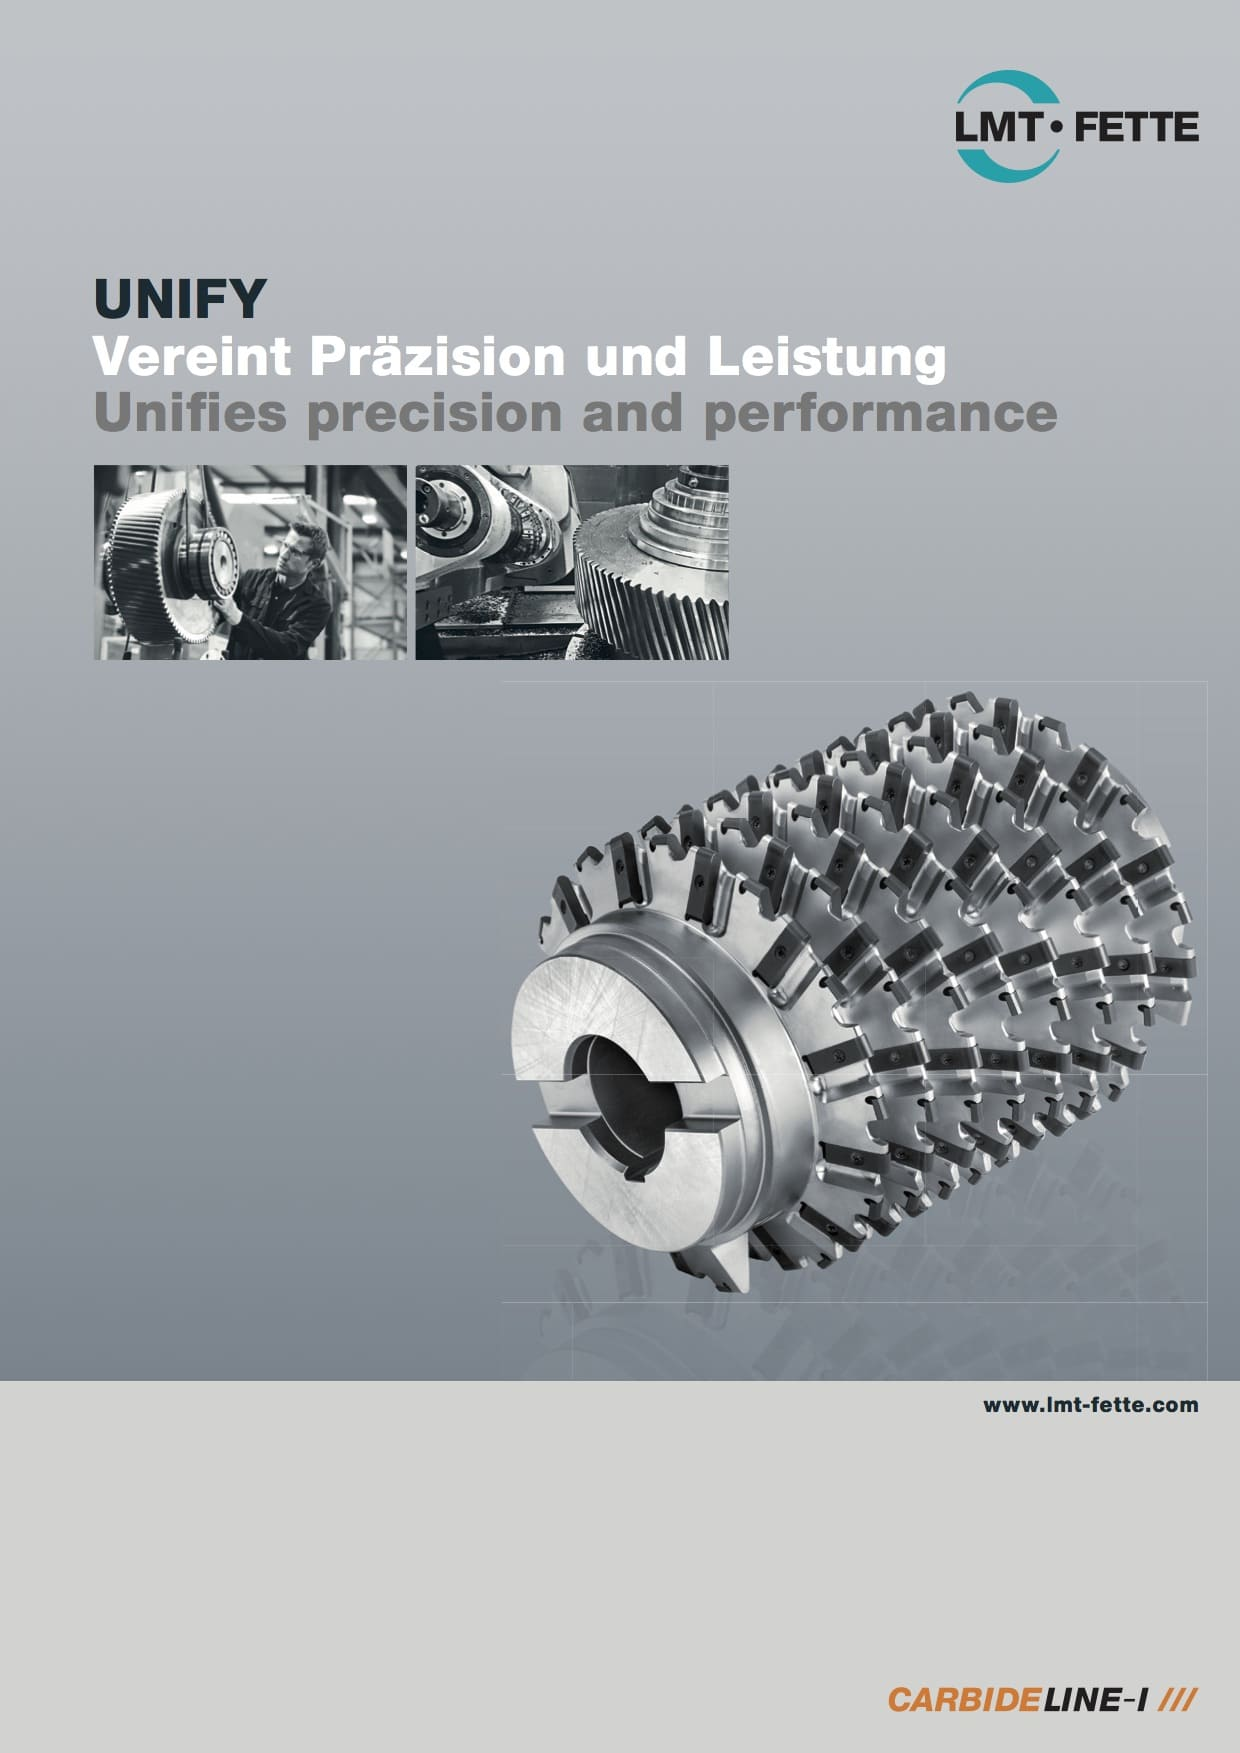 UNIFY - Unifies precision and performance